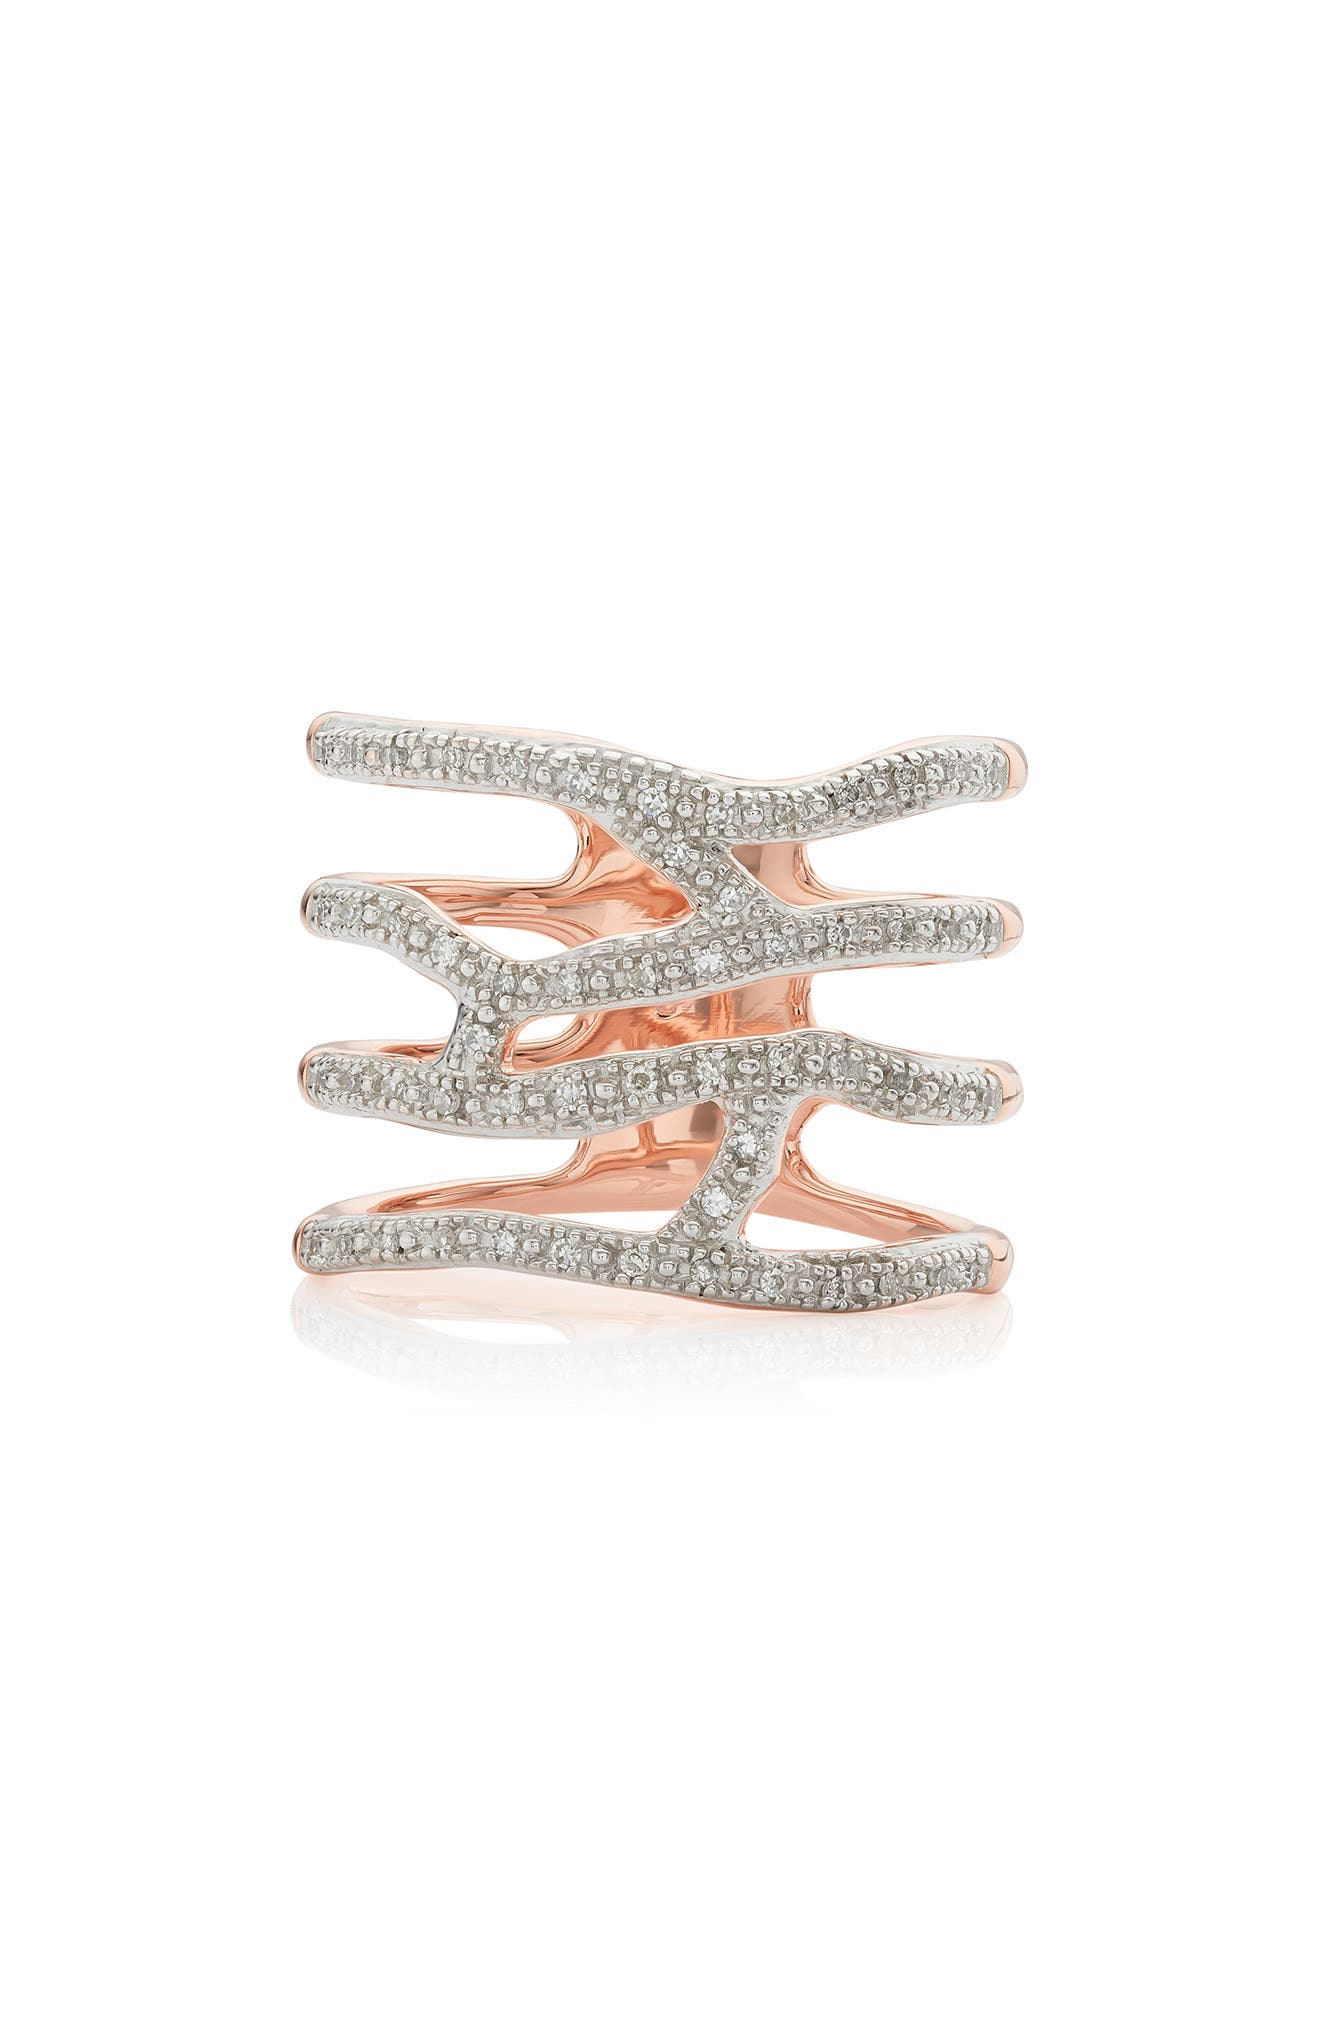 MONICA VINADER Riva Waterfall Diamond Cocktail Ring, Main, color, ROSE GOLD/ DIAMOND